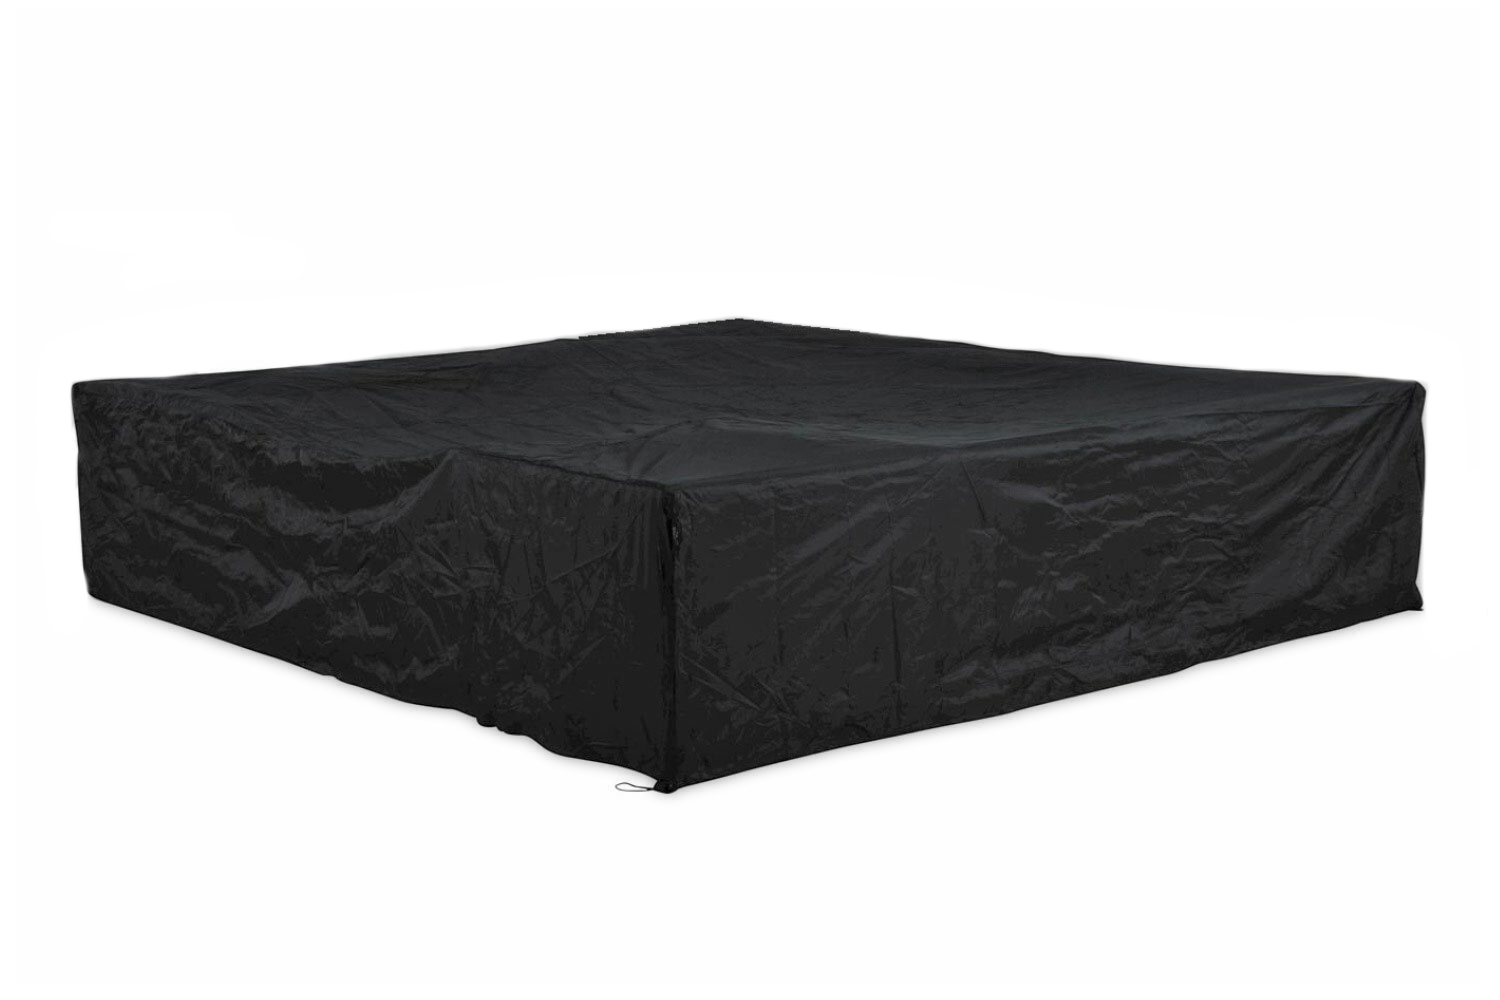 Outdoor Cover loungesethoes 255 x 255 x (h) 70 cm